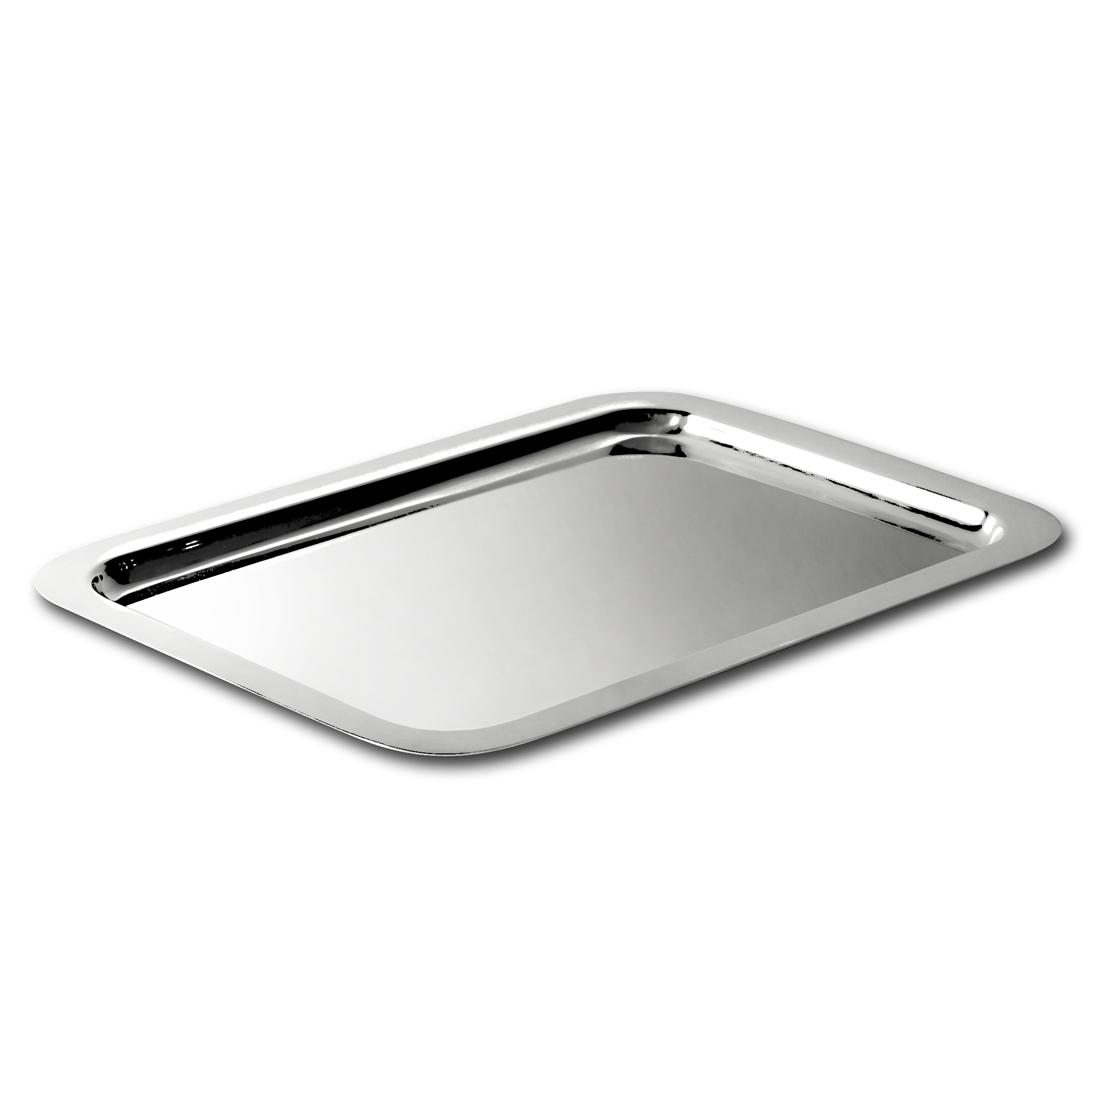 12-inch Rectangular Tray